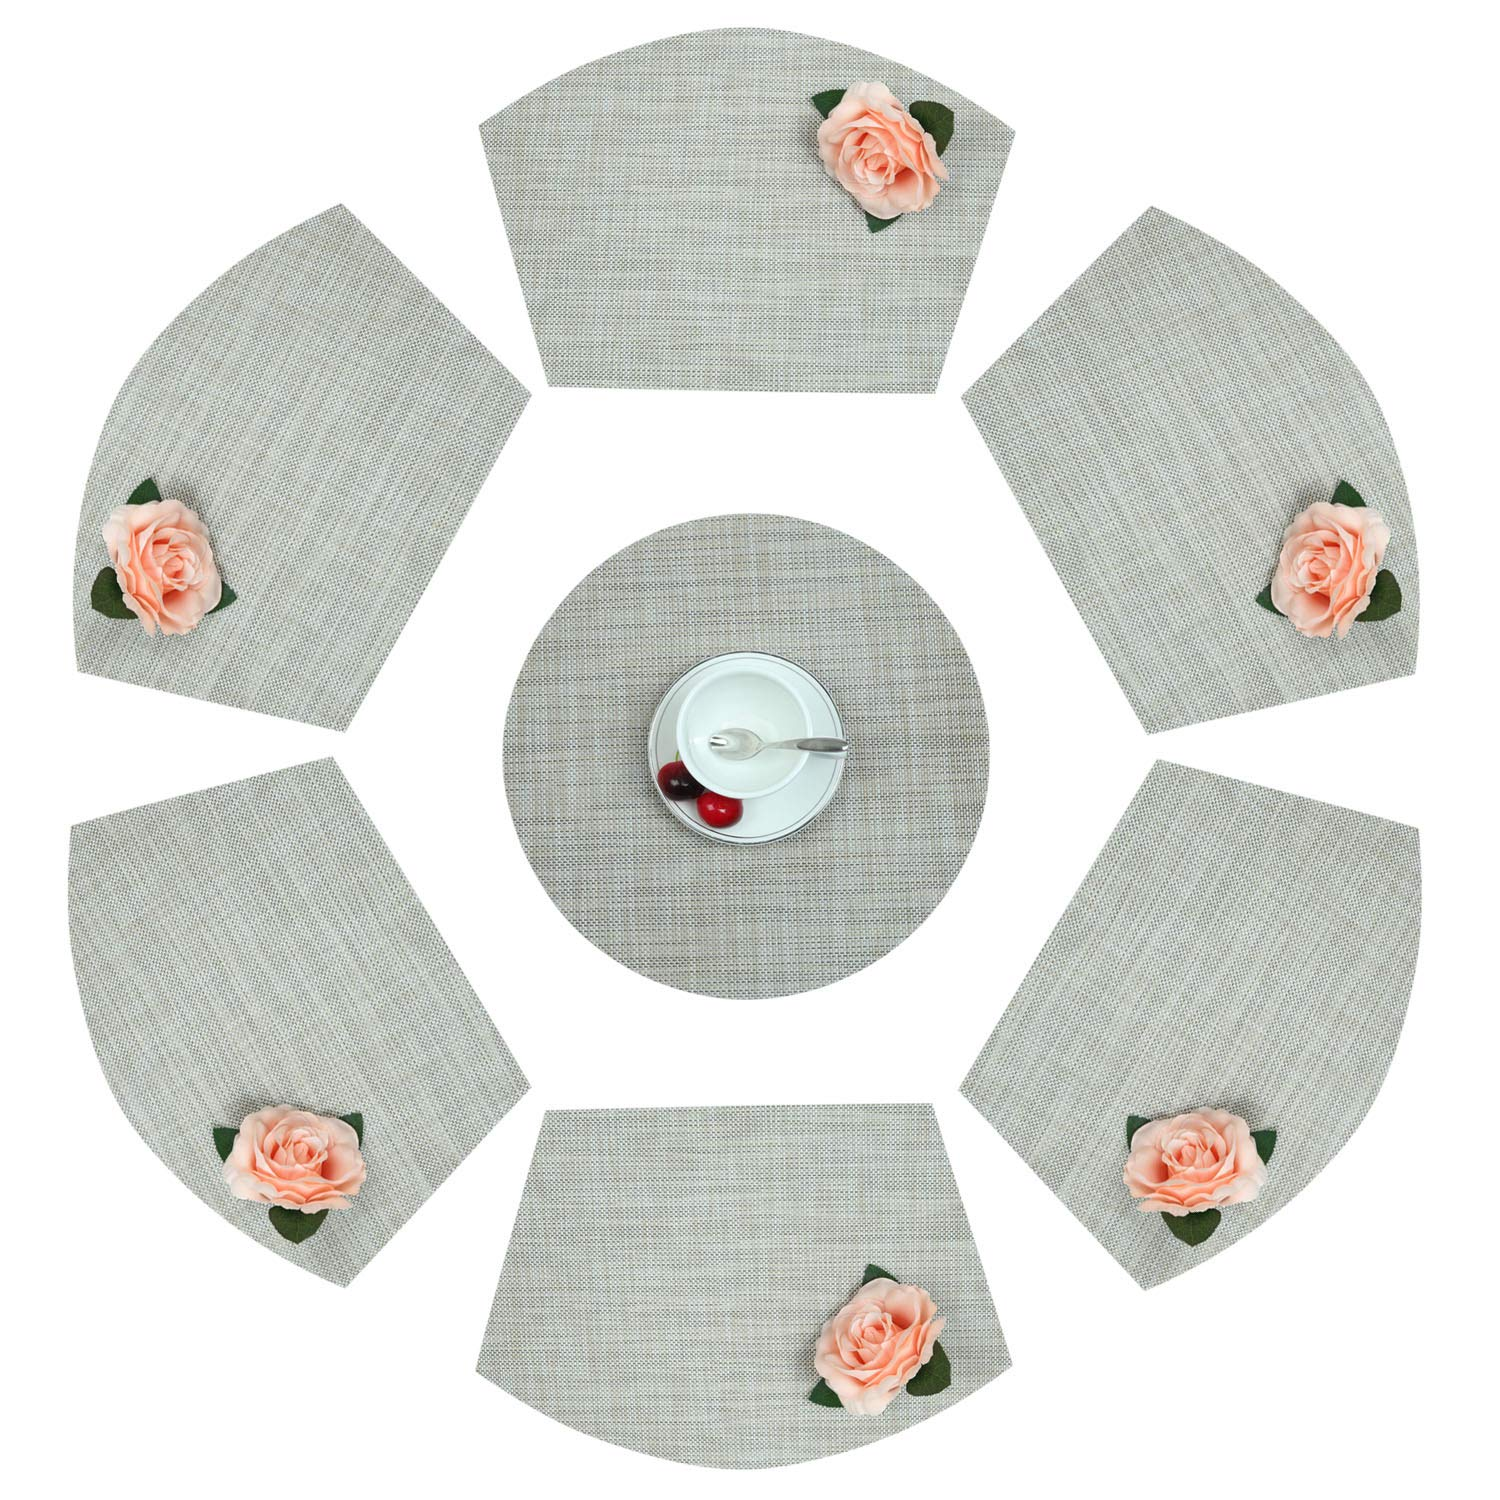 Homcomoda Round Table Place Mats PVC Wedge Shaped Placemat Set of 6 for Dining Table Plus Center Round Place Mat Heat Insulation Stain-Resistant Washable Placemats for Round Table (Set of 7, Linen)